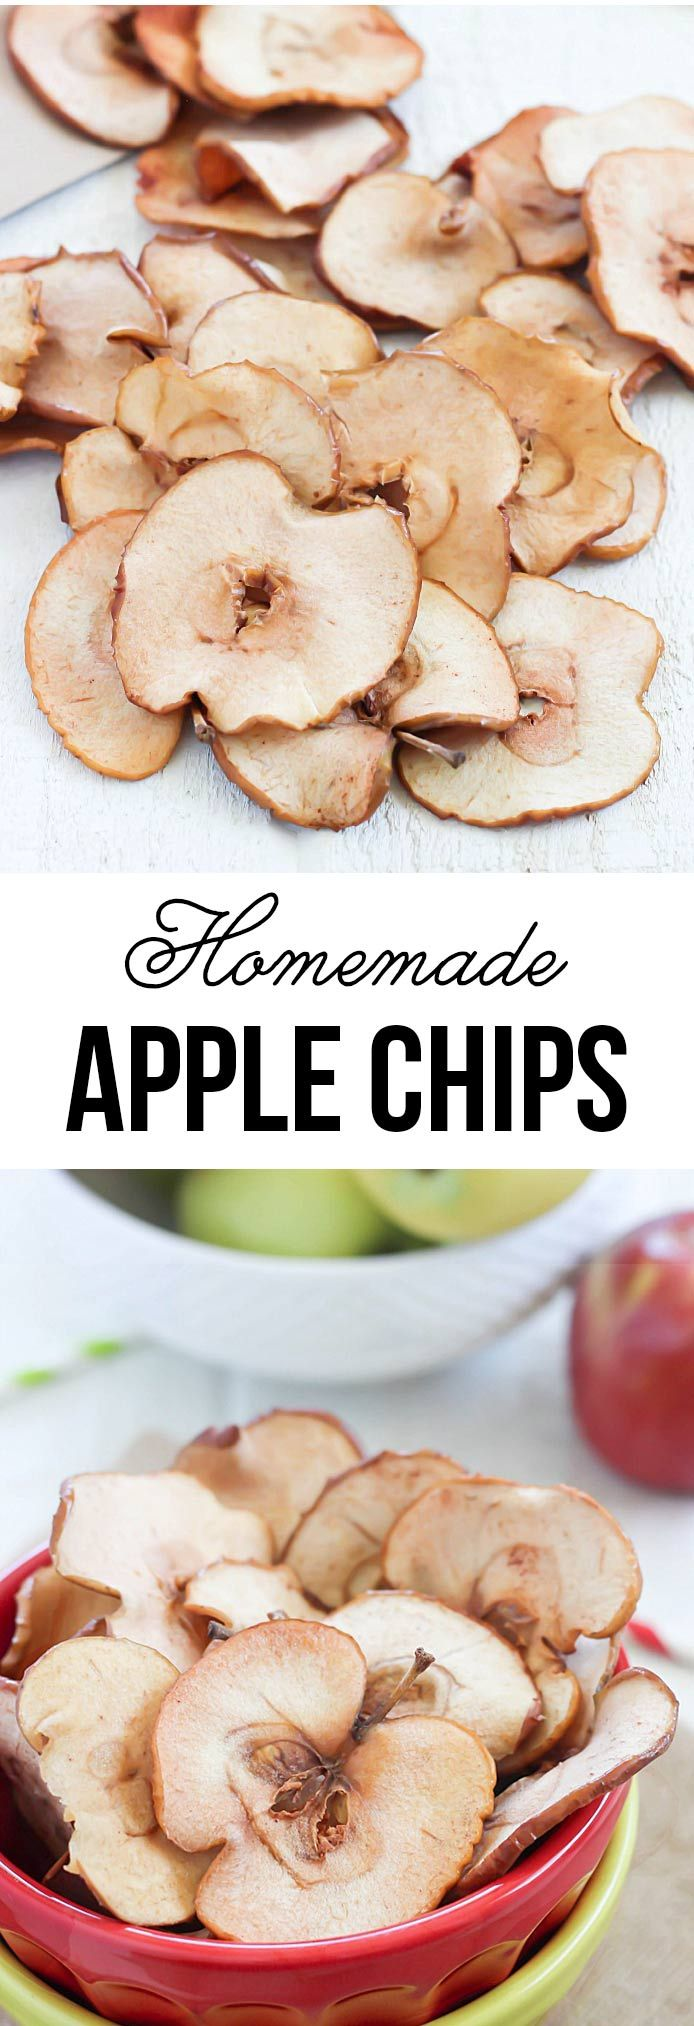 Homemade baked cinnamon apple chips -an easy, healthy and delicious snack